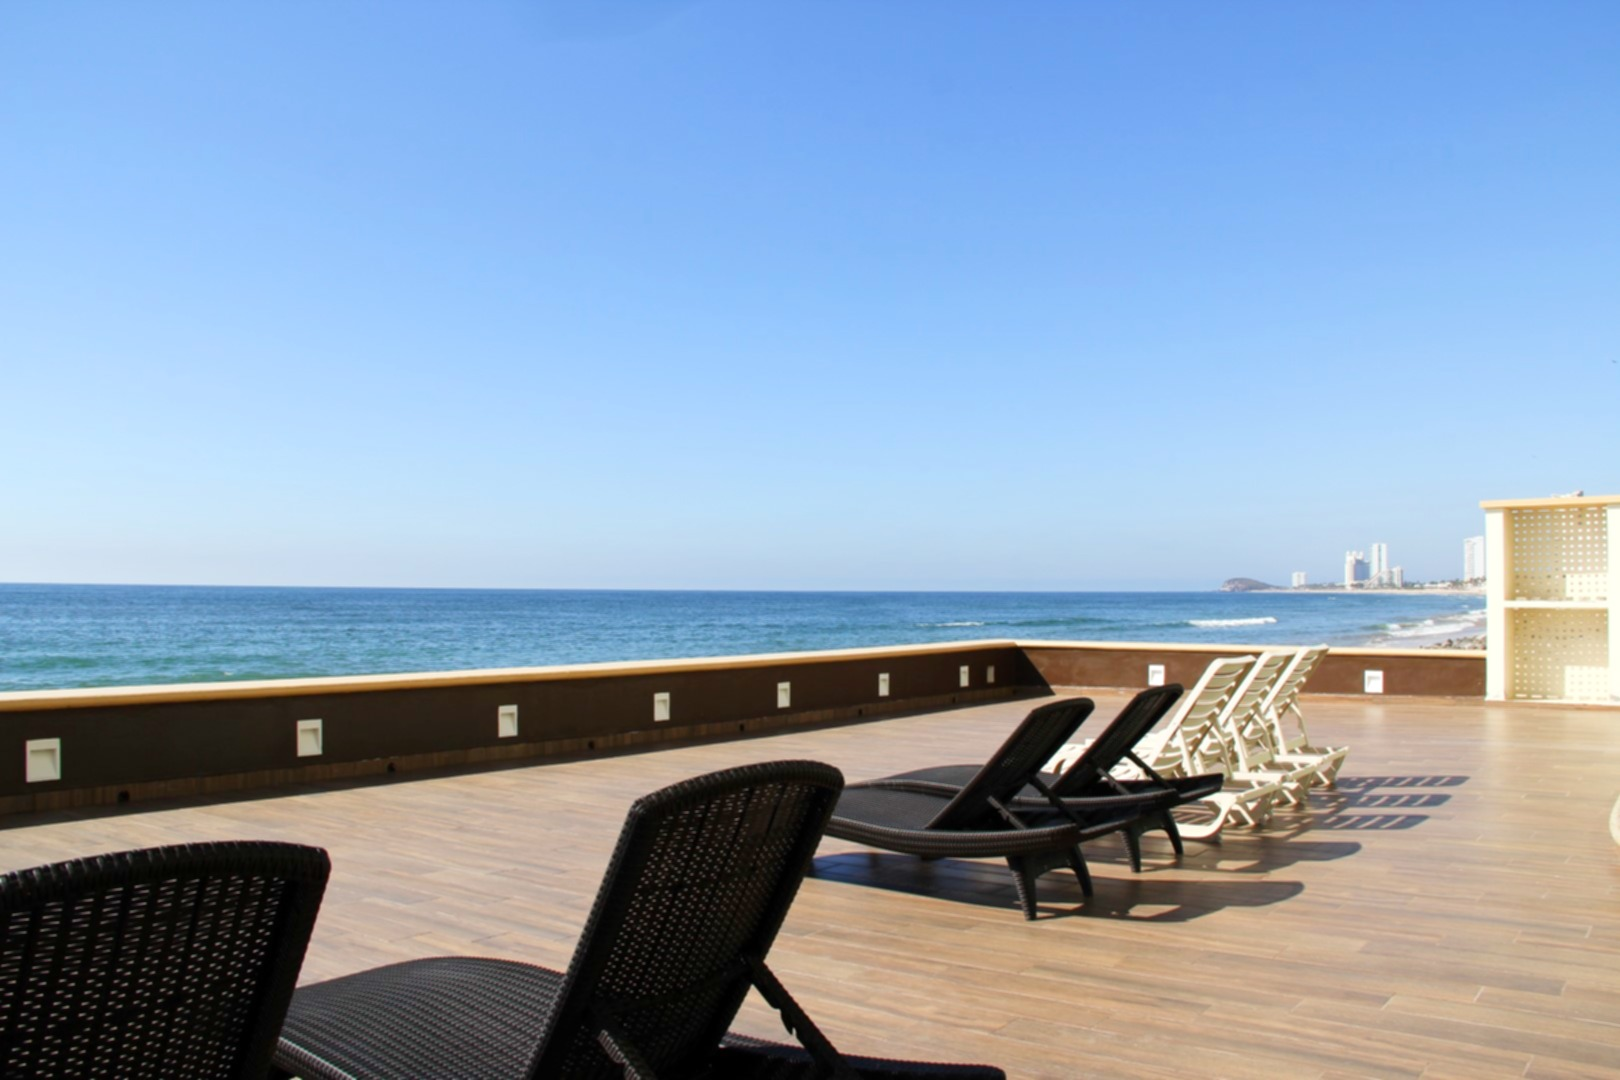 Sun deck with loungers.